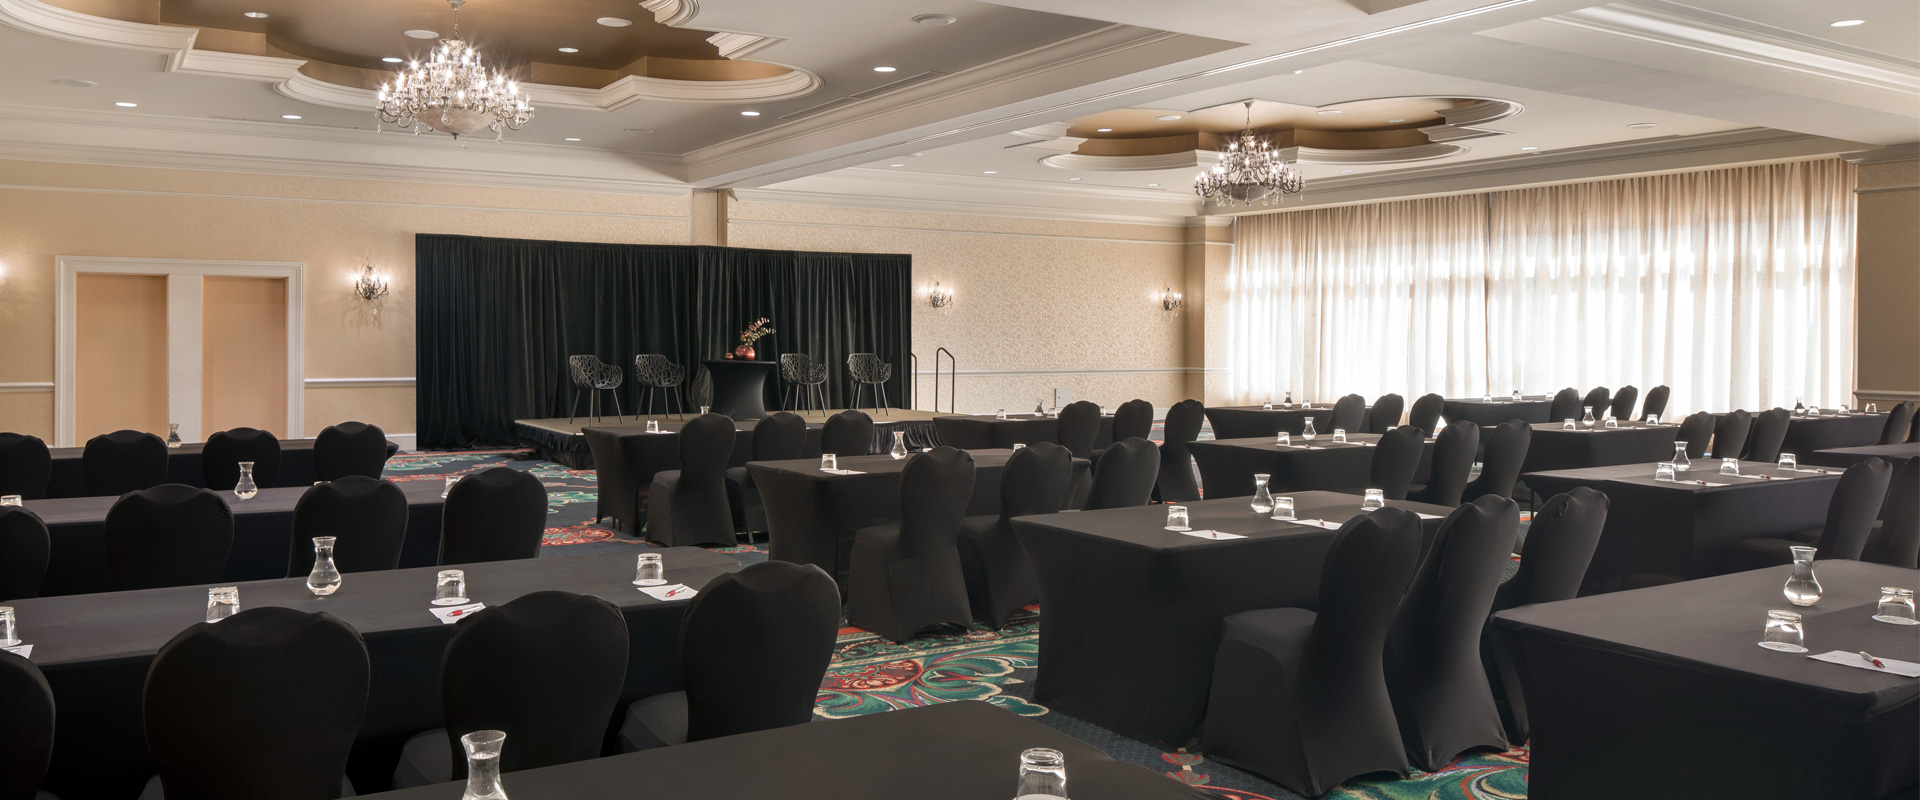 Conference Room at Marriott St. Kitts